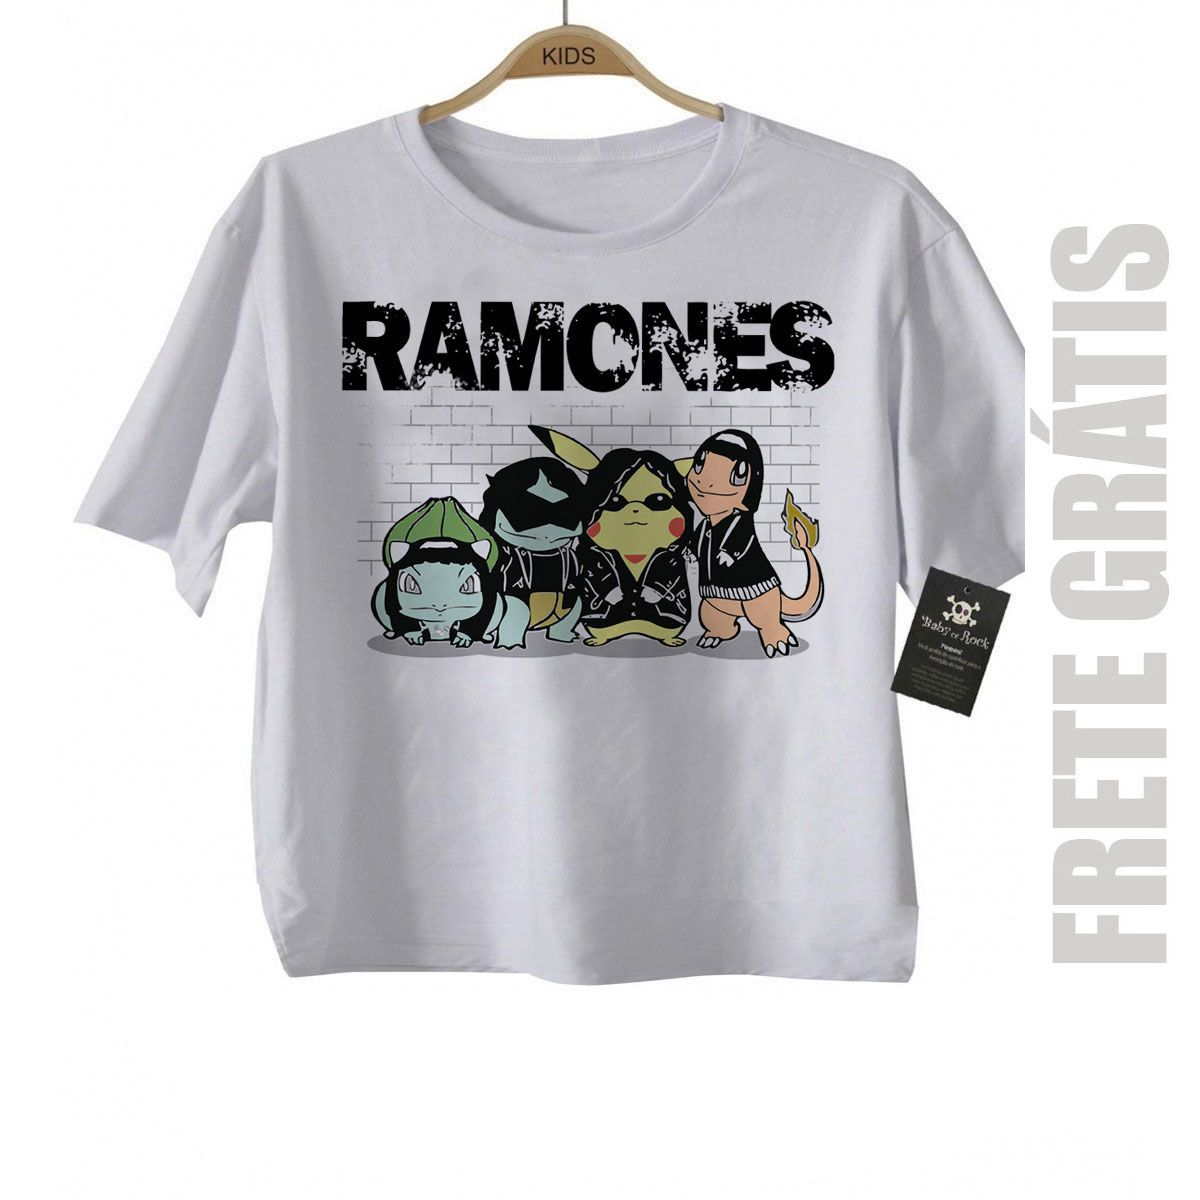 Camiseta Infantil  Nerd Geek  RAMONES Pokemon - White  - Baby Monster S/A